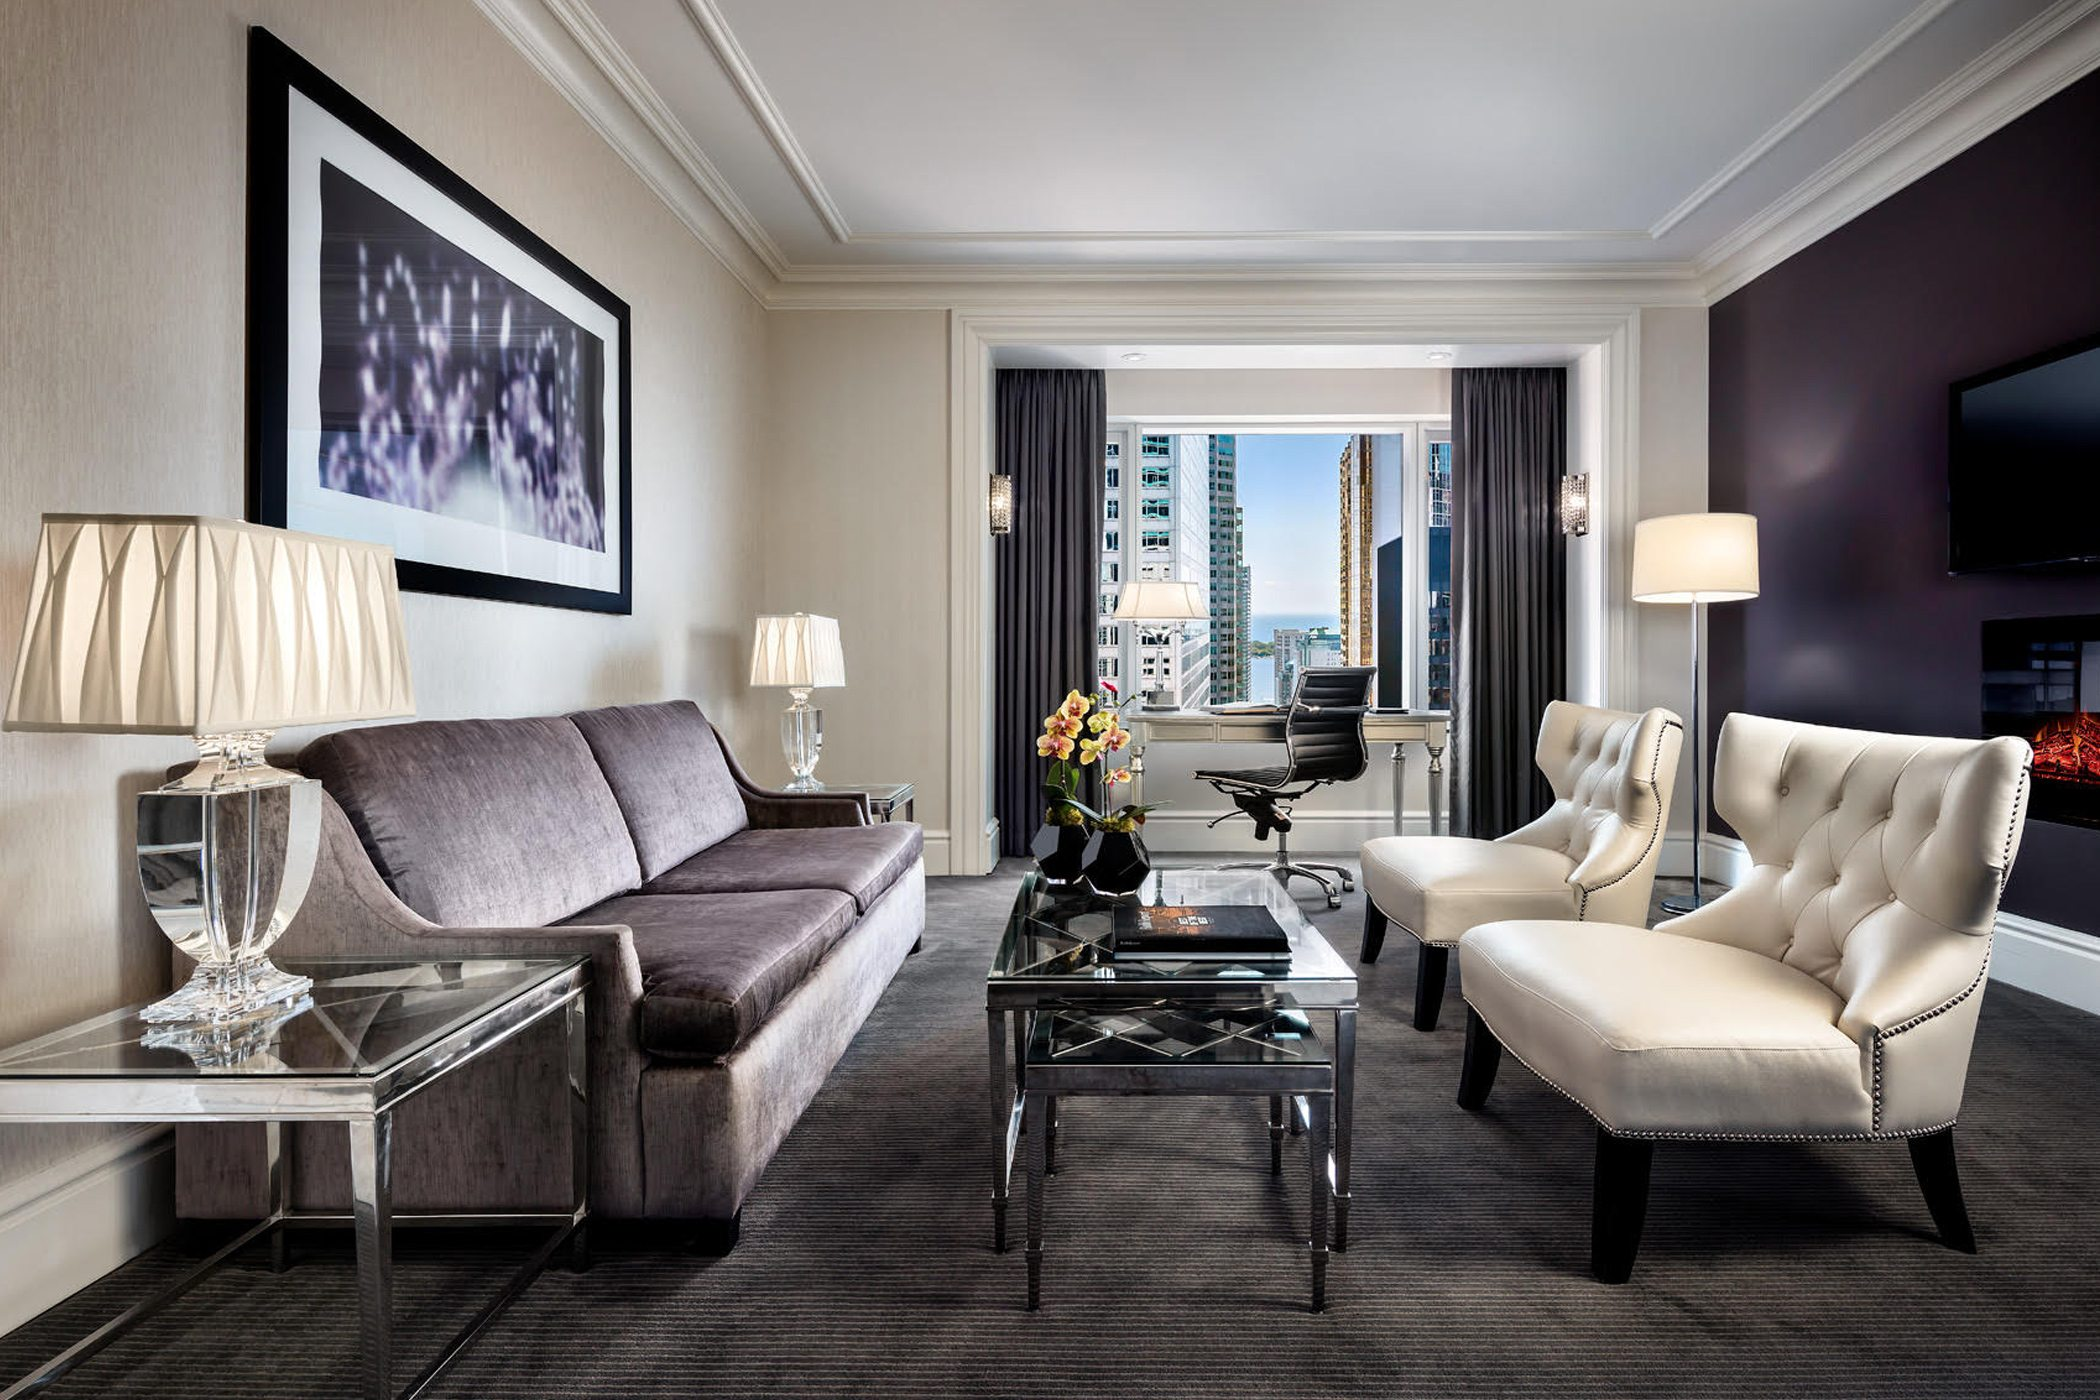 St Regis Opens Its First Ever Luxury Hotel In Toronto Canada